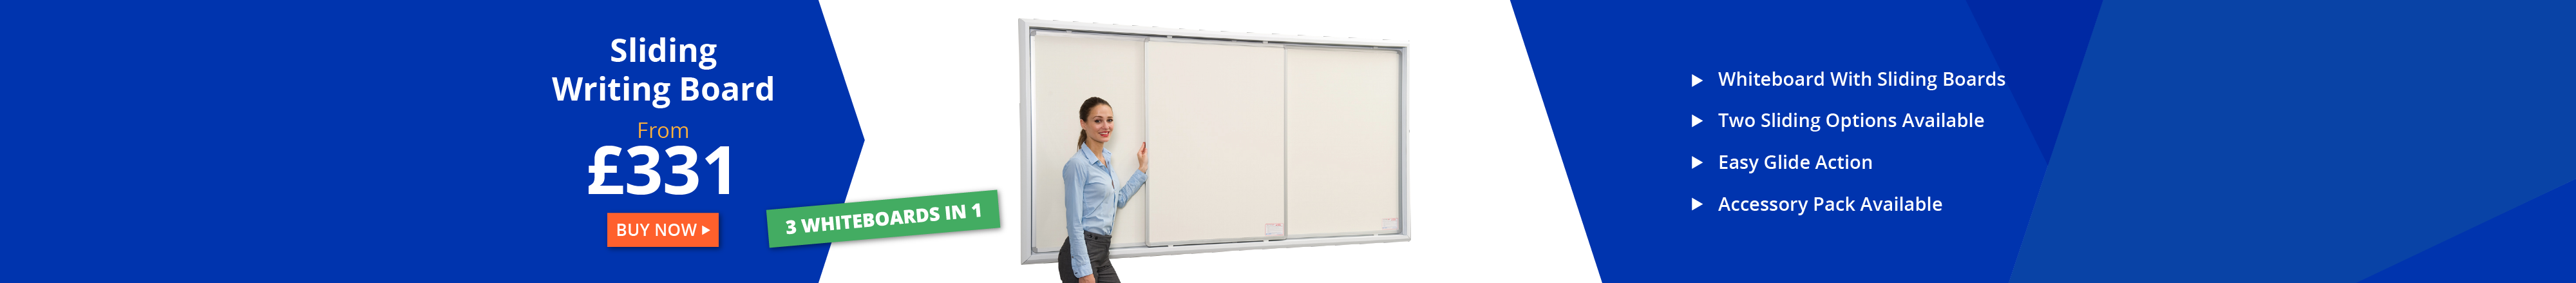 Sliding Writing Board Whiteboards Wall Mounted